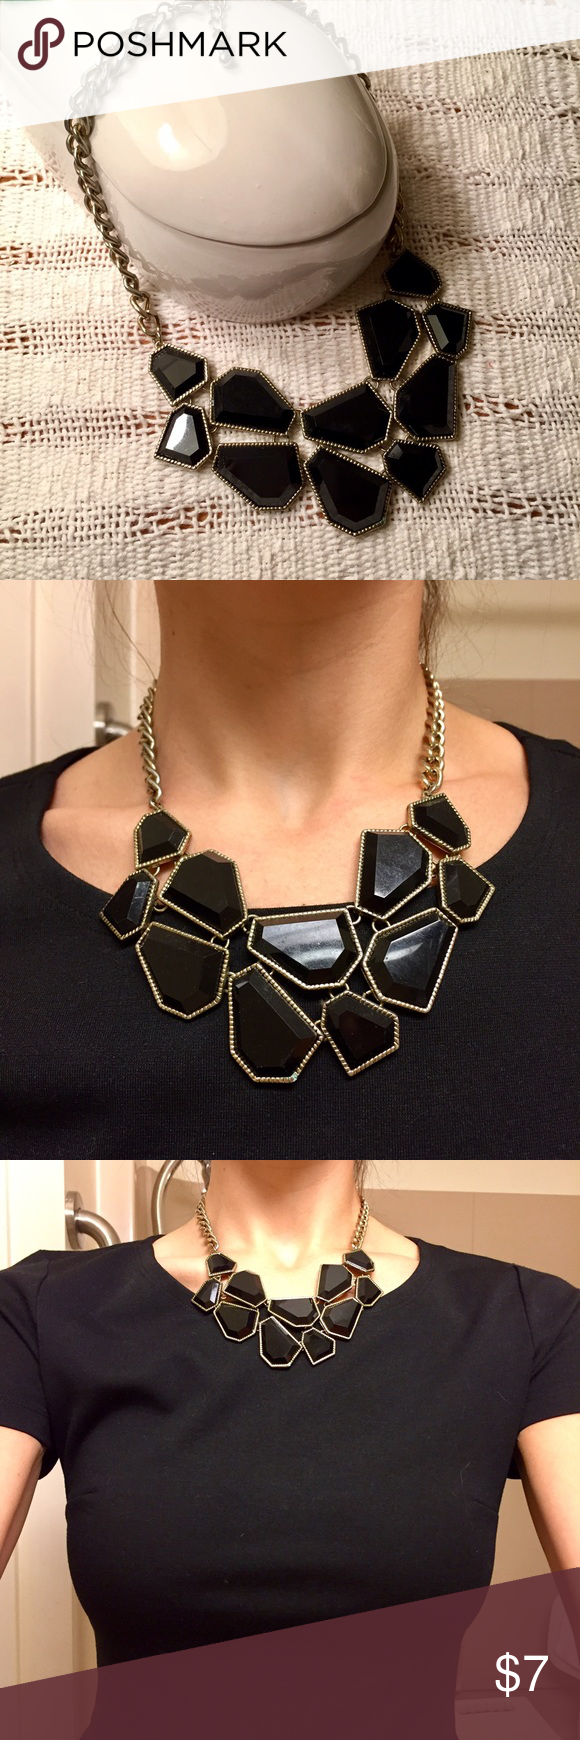 Black and gold statement necklace Purchased at F21 in Dubai, EUC Forever 21 Jewelry Necklaces